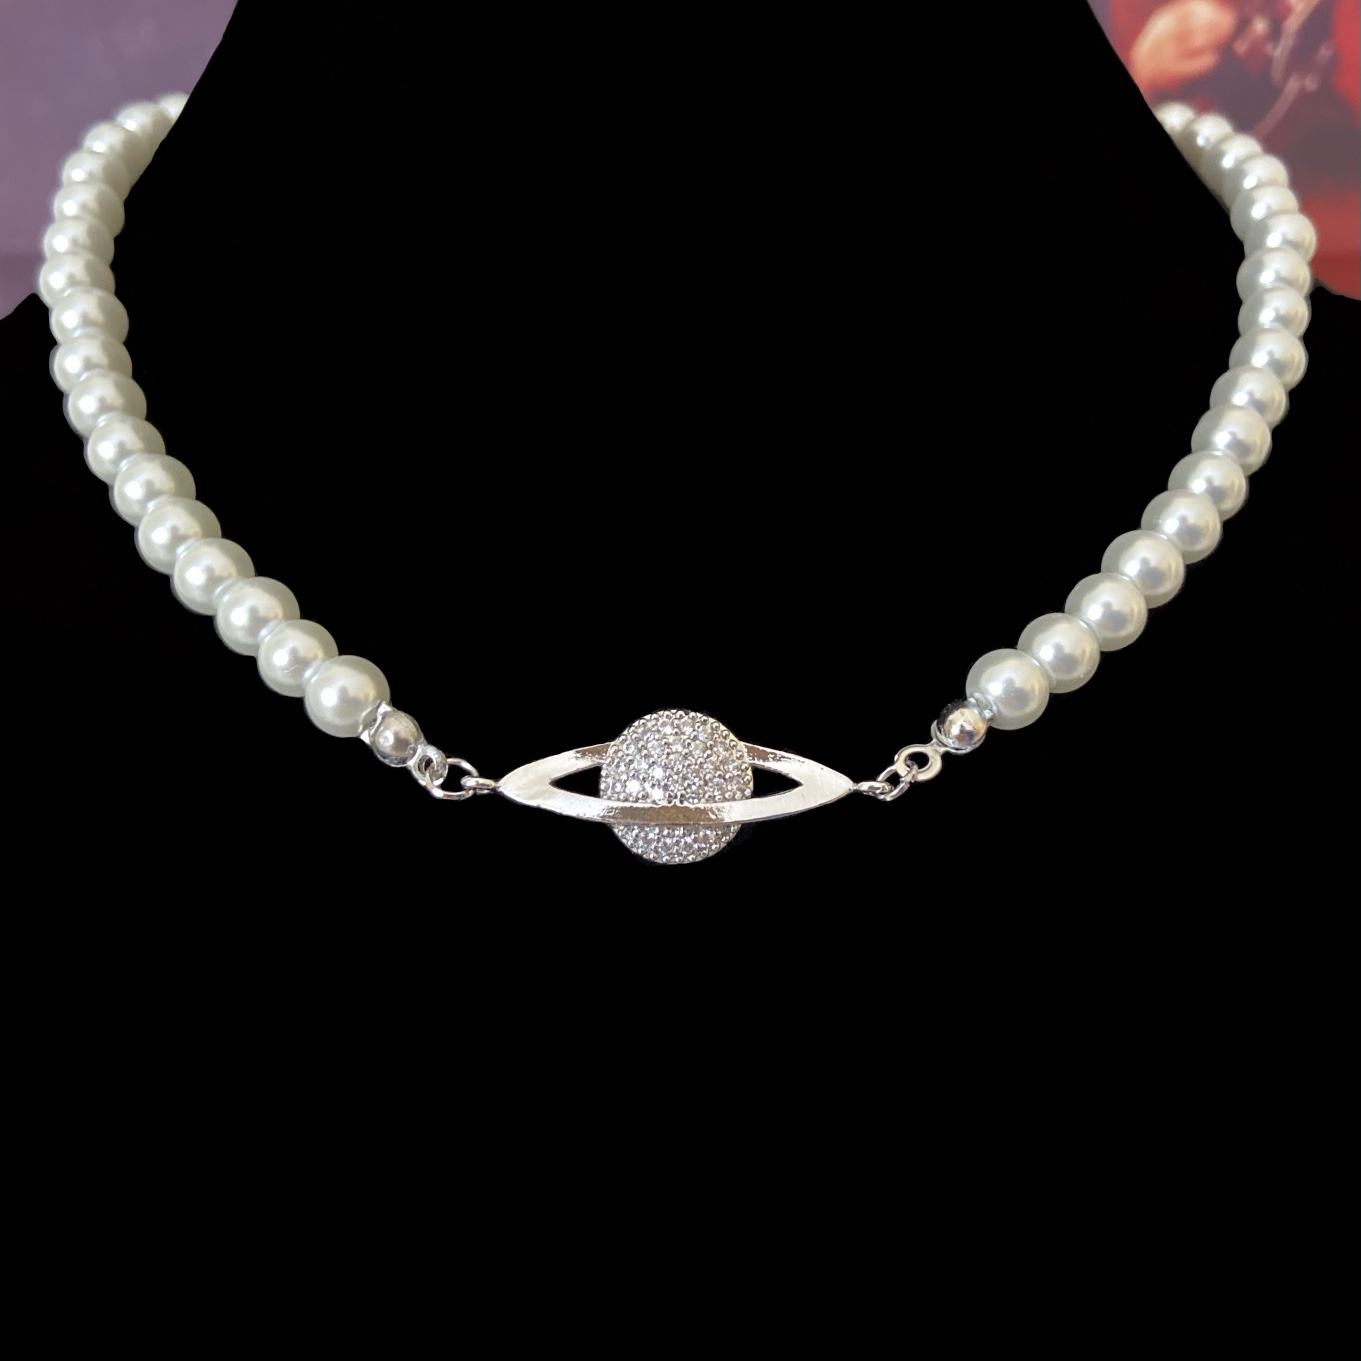 Product Image 1 - New! Y2K pearl necklace. Made